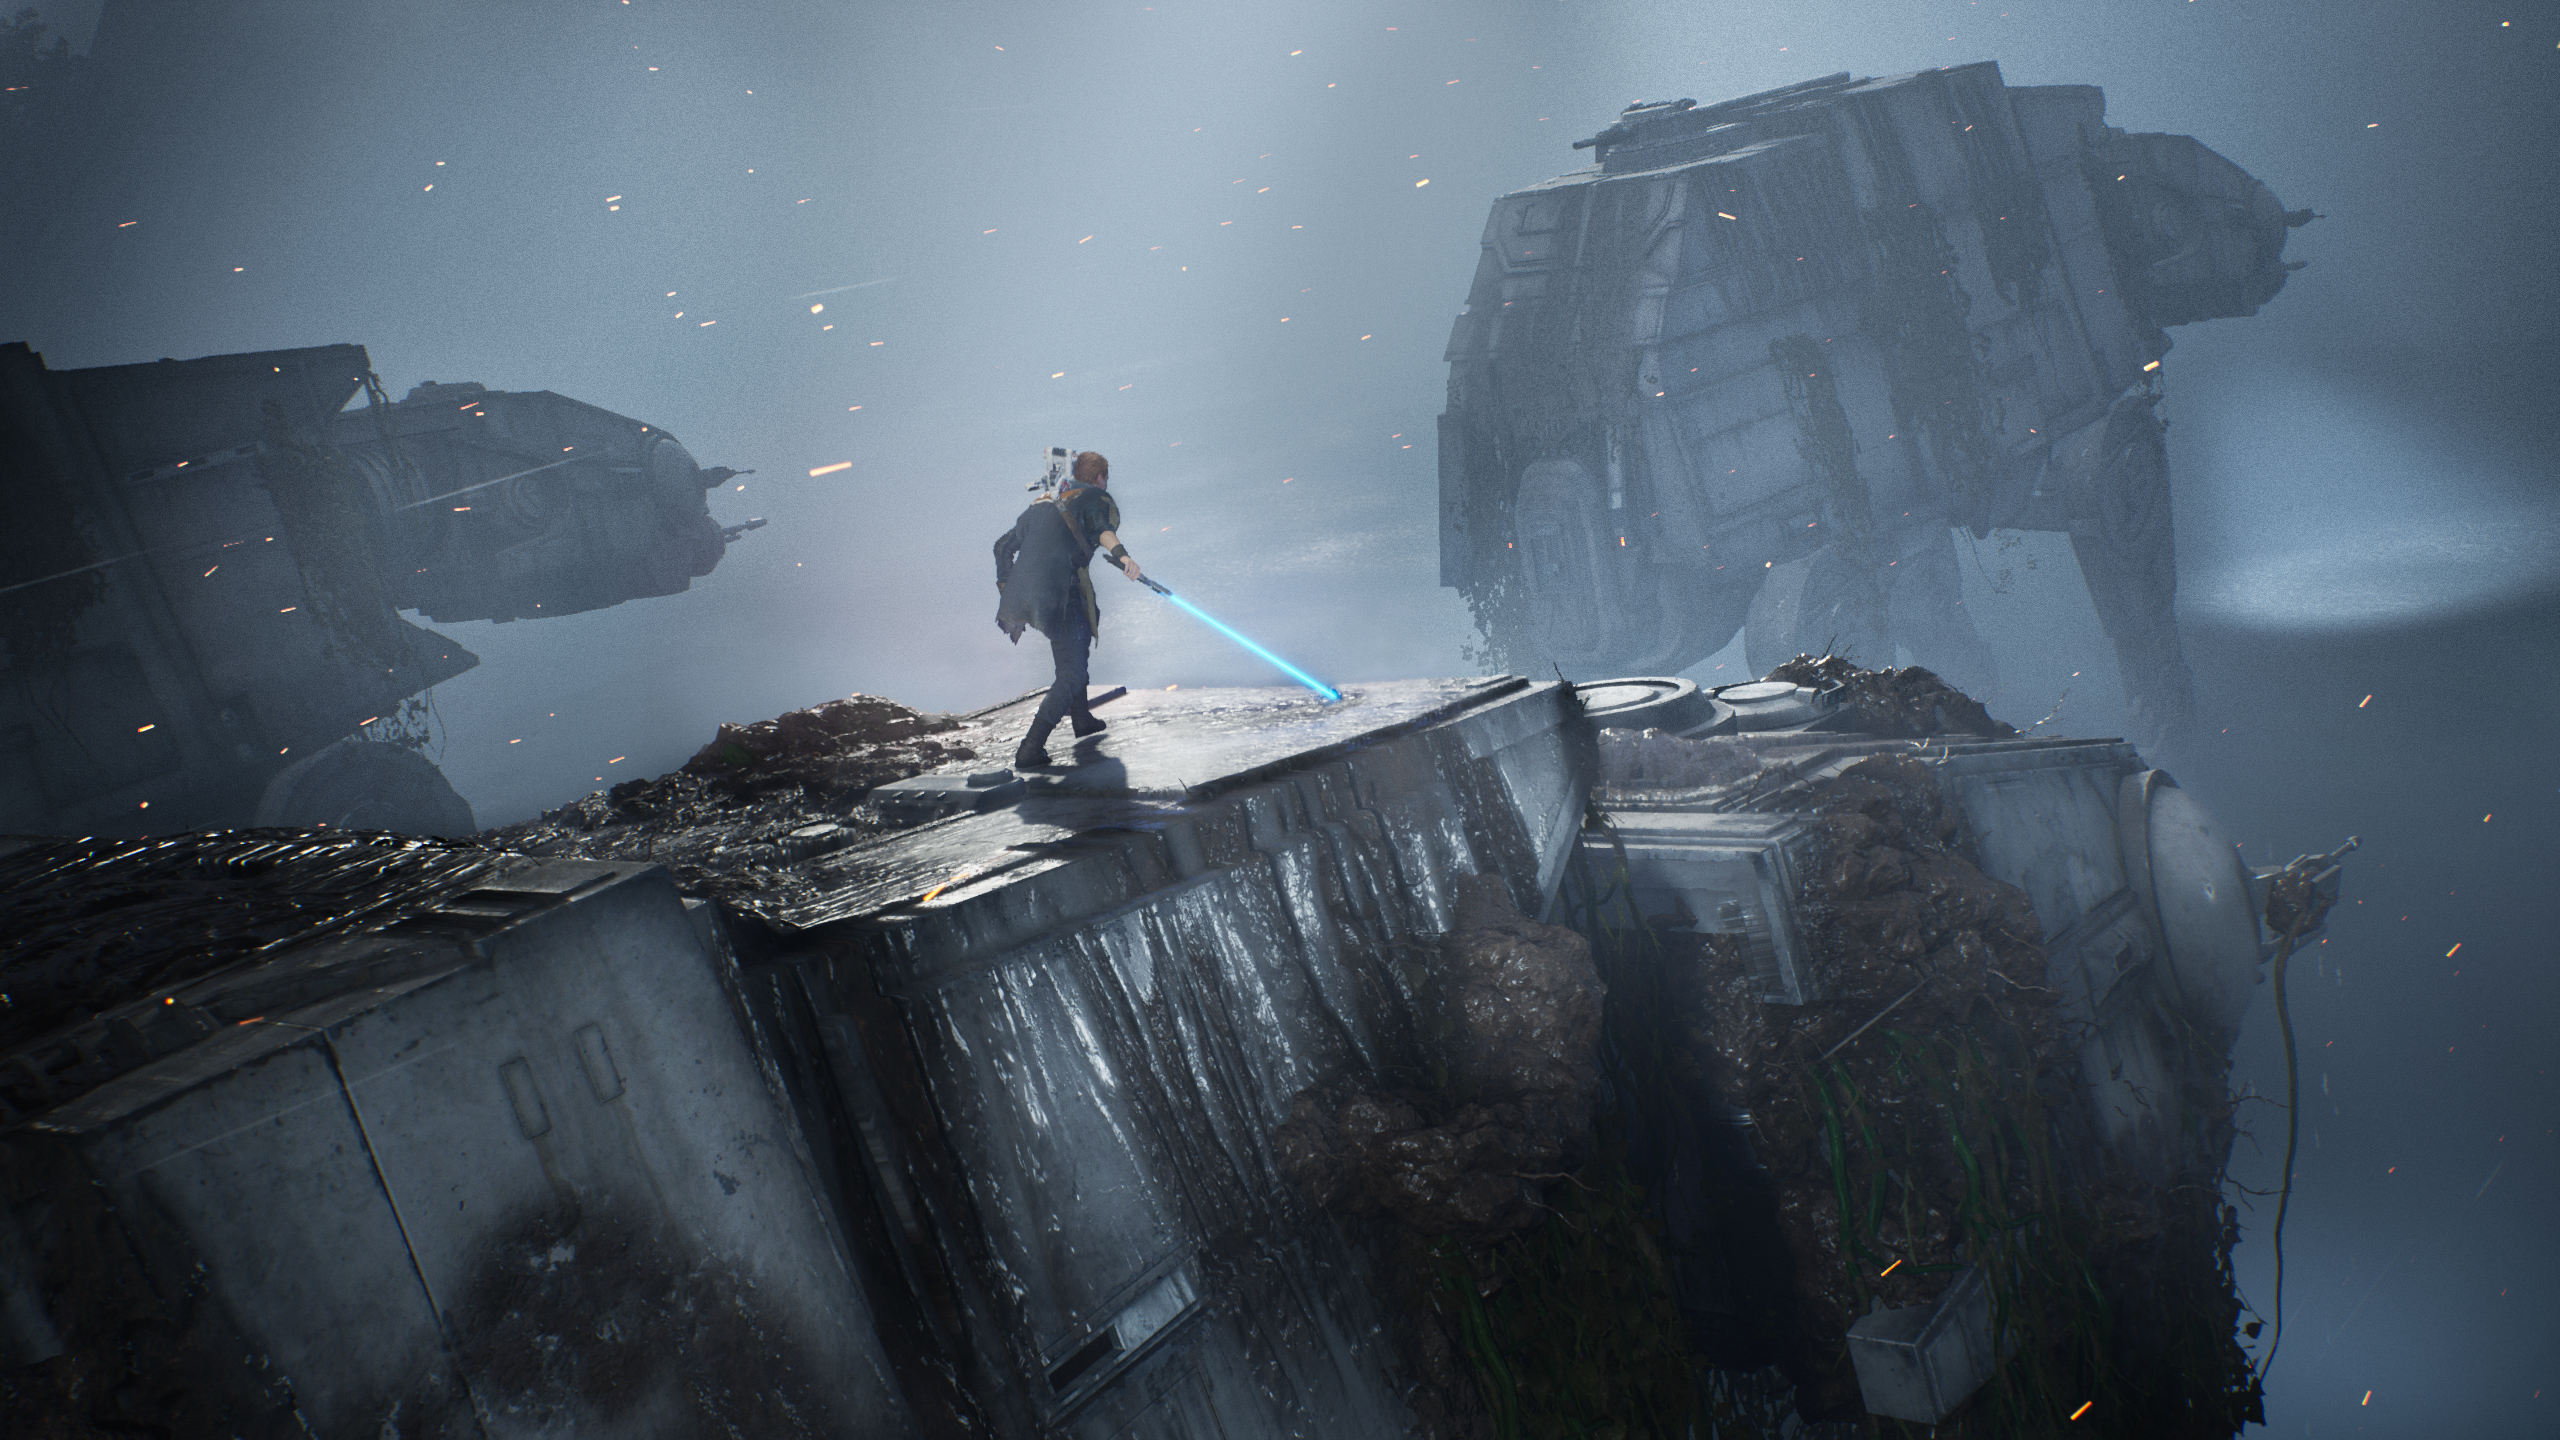 Star Wars Wallpaper 2560x1440 Posted By Samantha Thompson